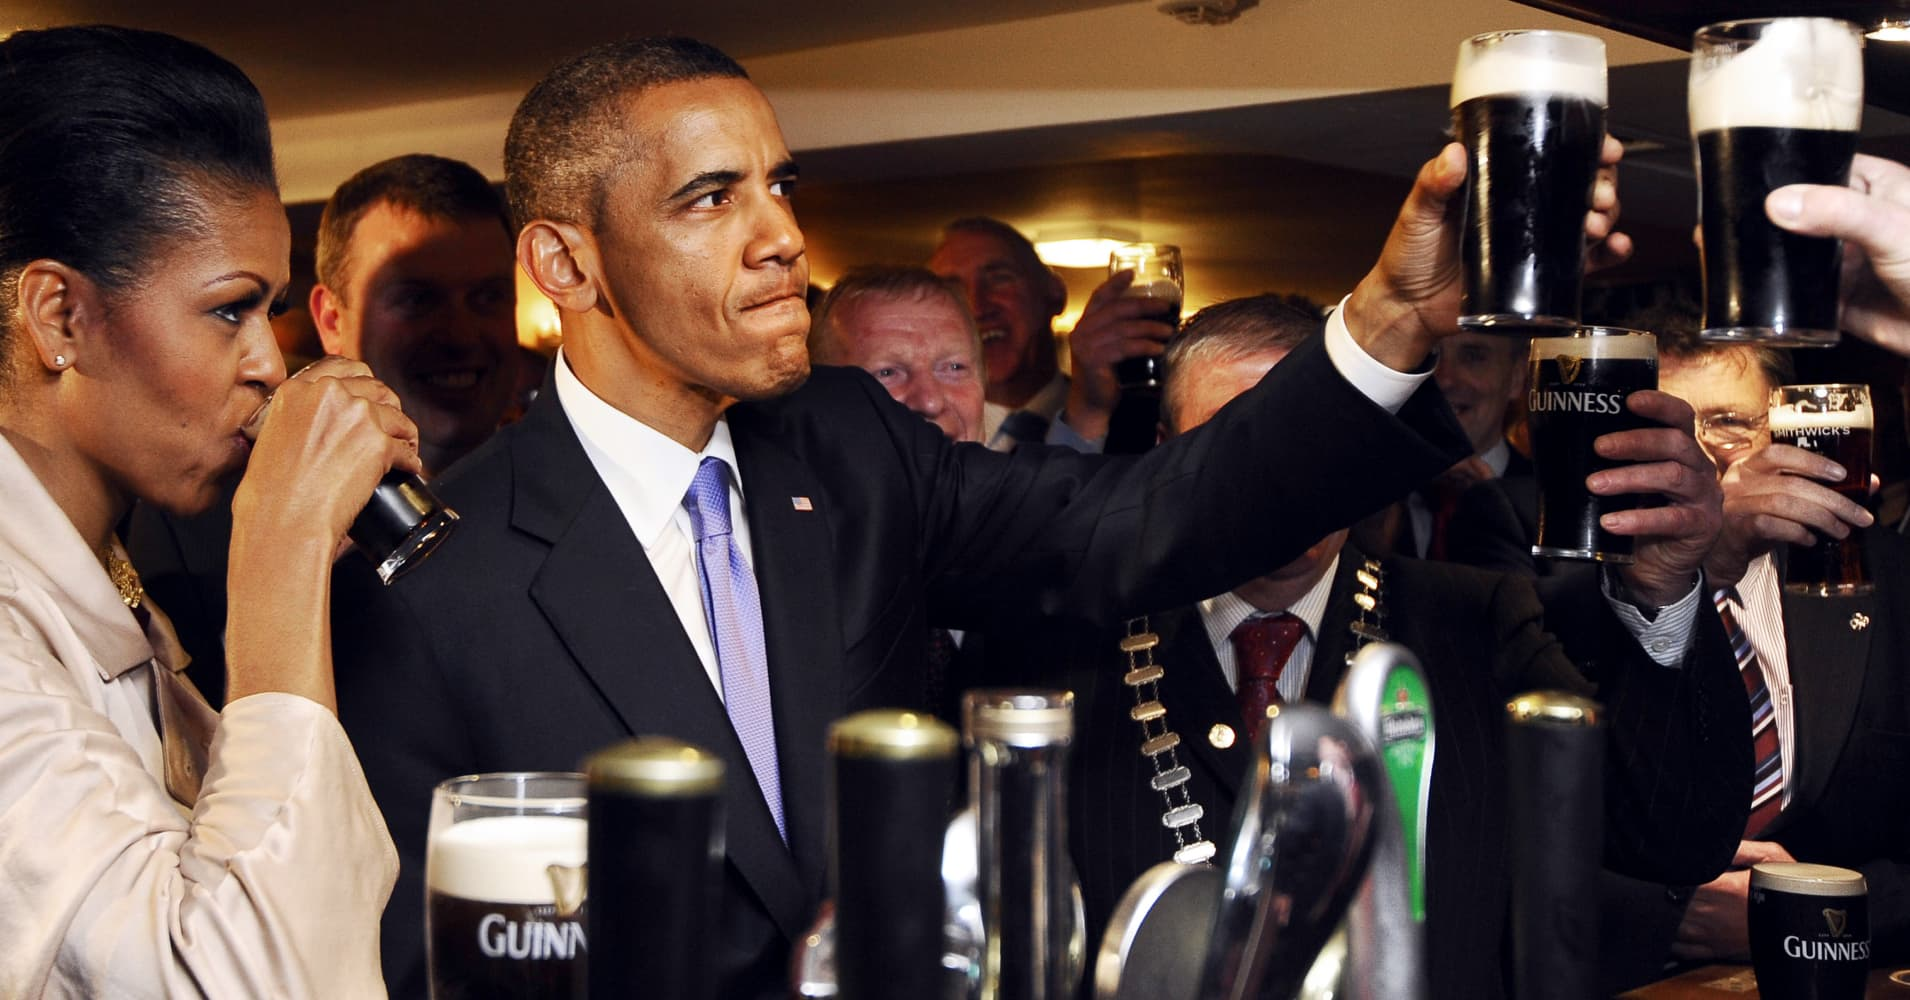 U.S. President Barack Obama (2ndL) and First Lady Michelle Obama (L) sip Guinness at a pub as they visit Moneygall village in rural County Offaly, Ireland, where his great-great-great grandfather Falmouth Kearney hailed from, on May 23, 2011.